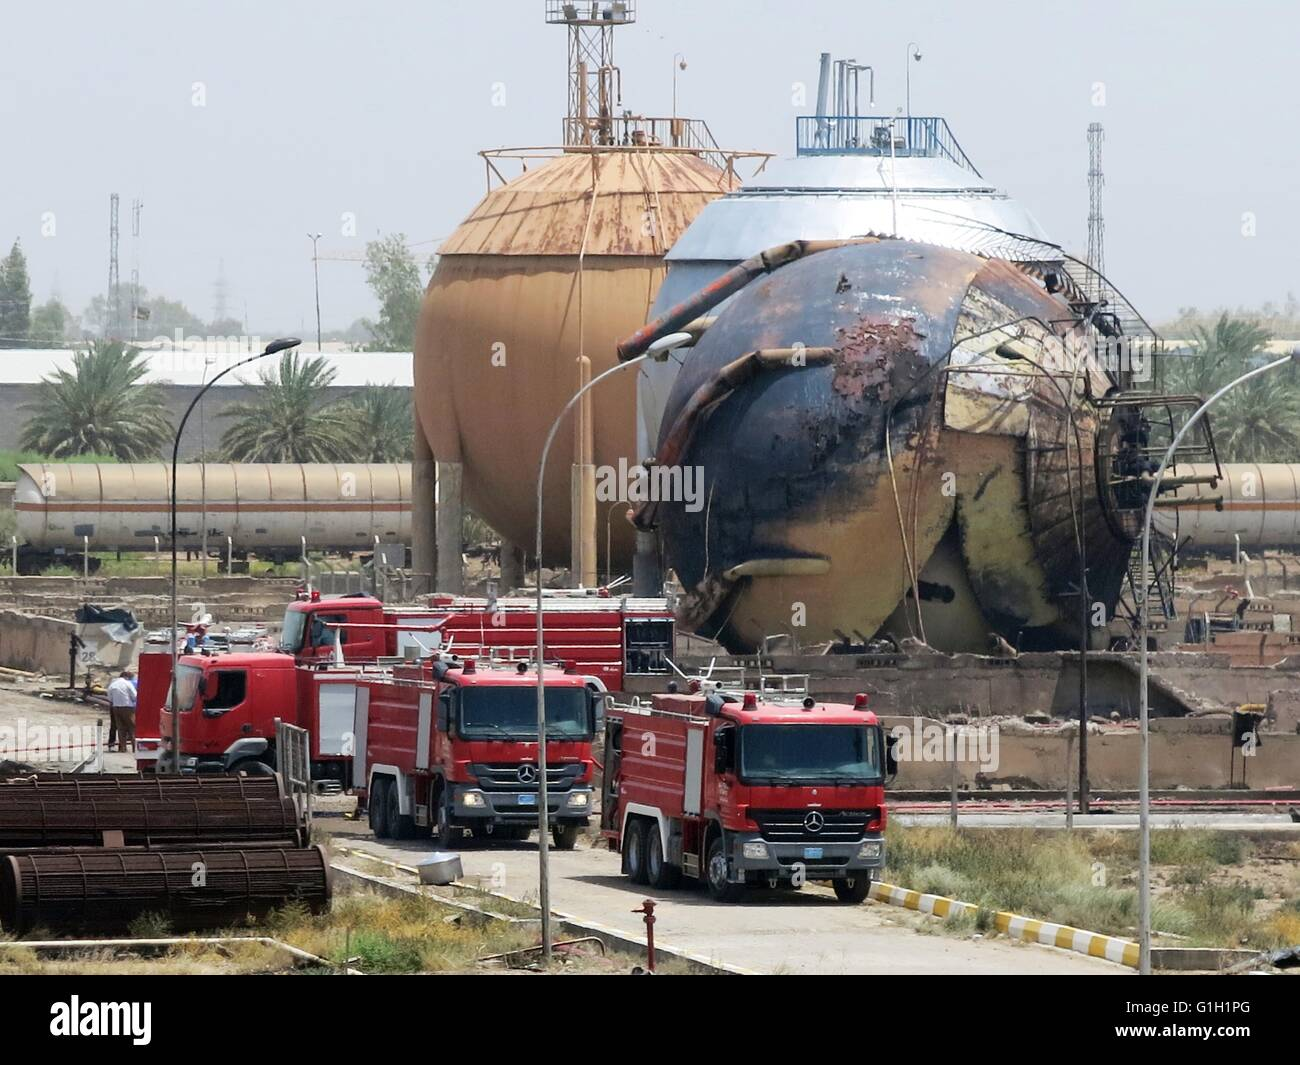 Baghdad, Iraqi capital of Baghdad. 15th May, 2016. Fire engines are seen at a gas plant after it was attacked by - Stock Image